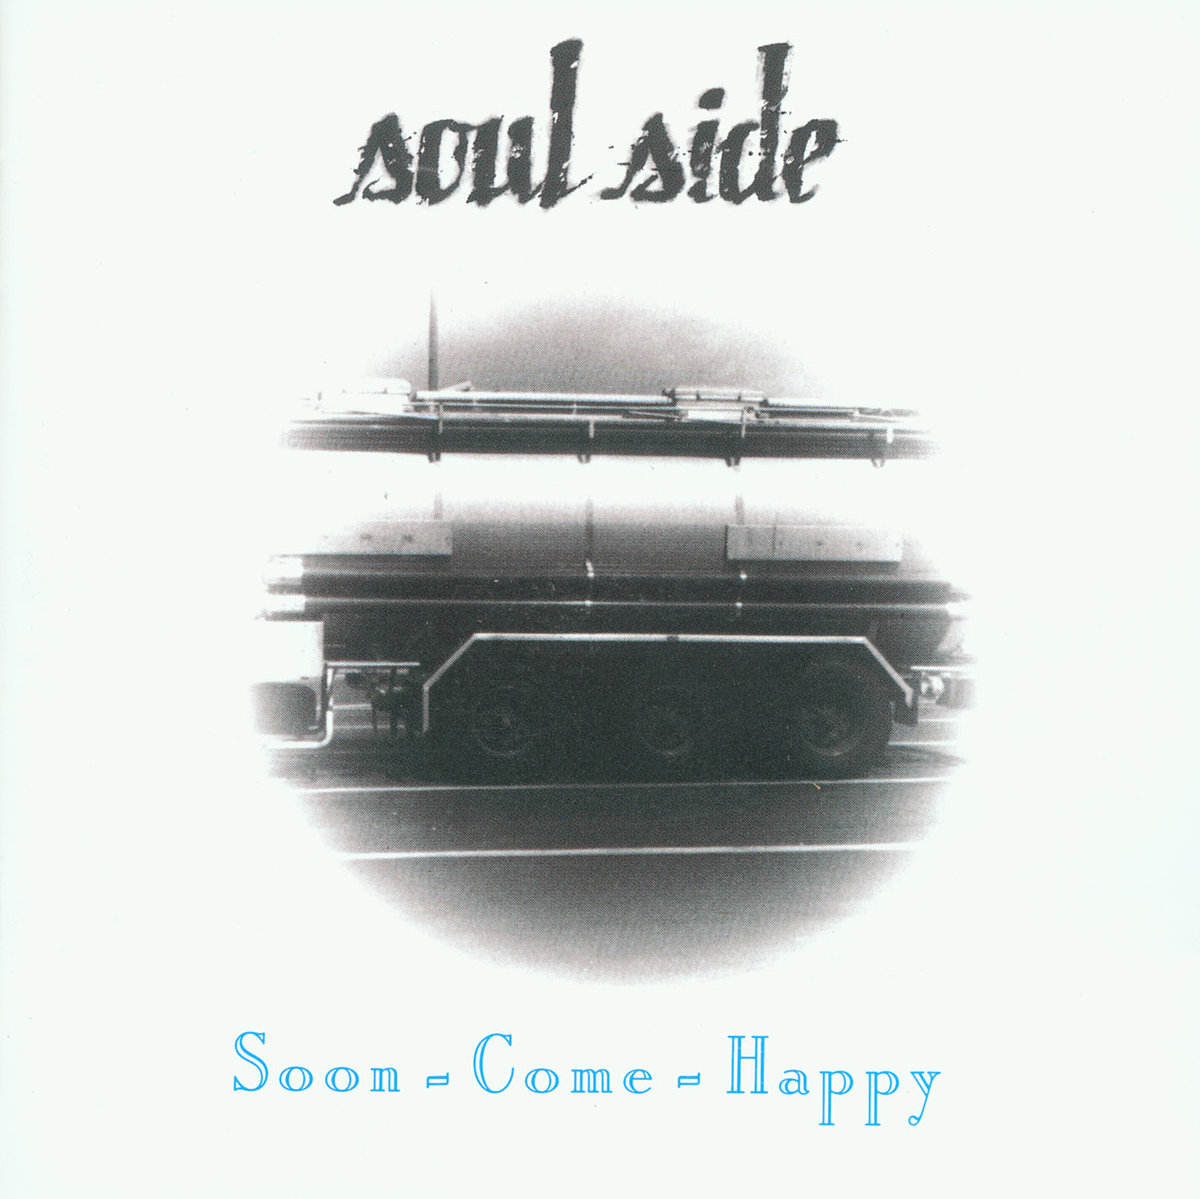 Soulside Soon Come Happy